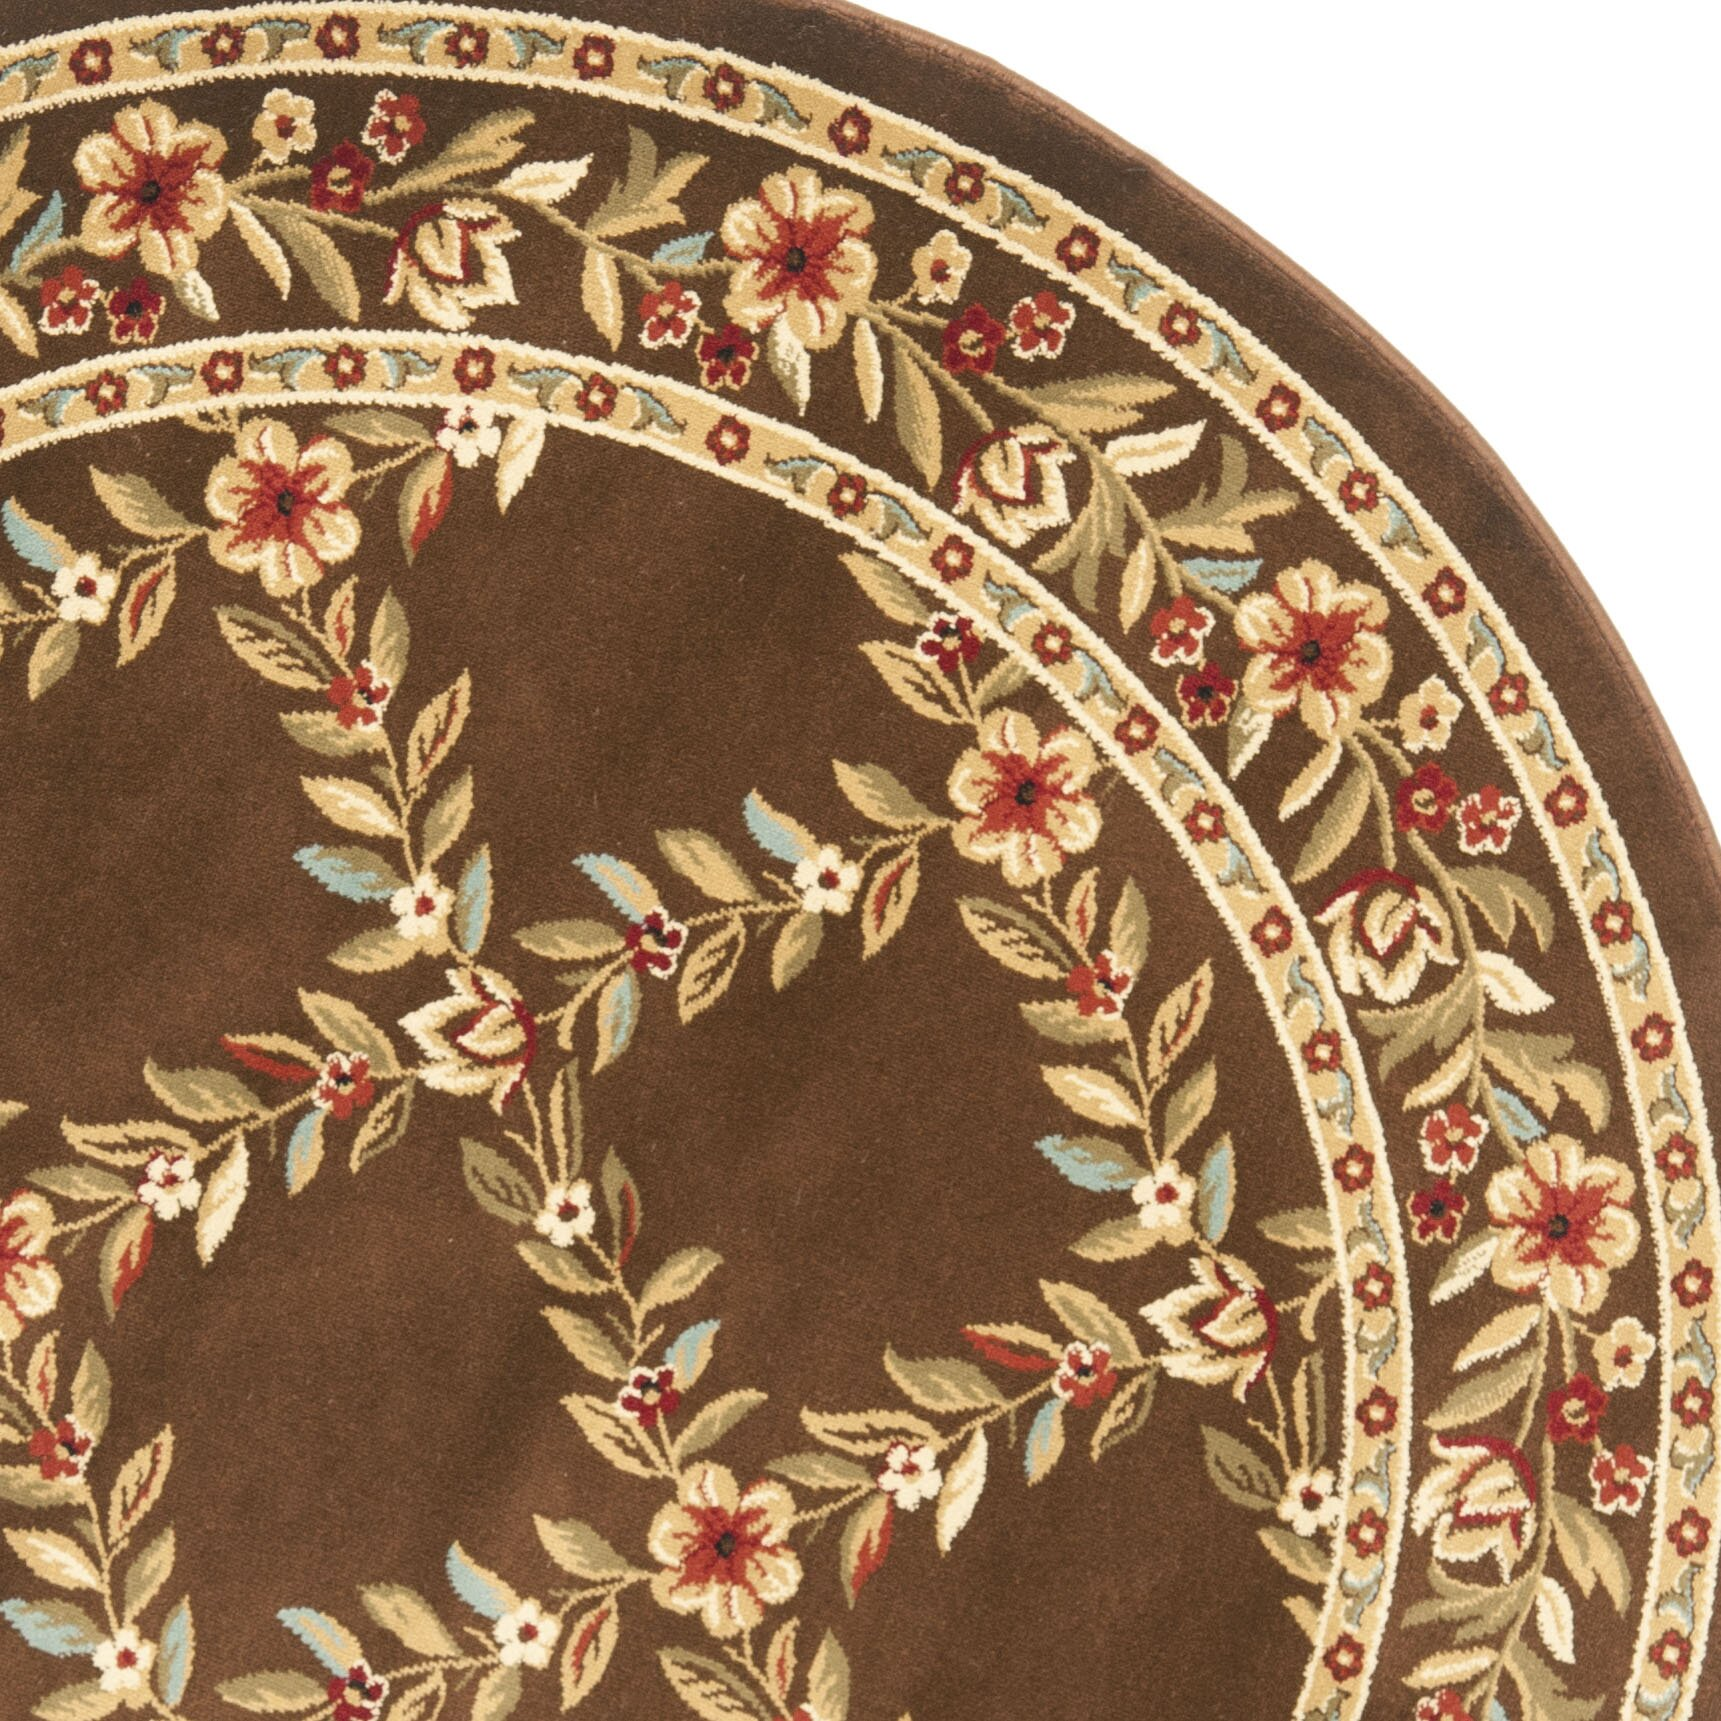 Checked Area Rugs: Safavieh Lyndhurst Brown Checked Area Rug & Reviews